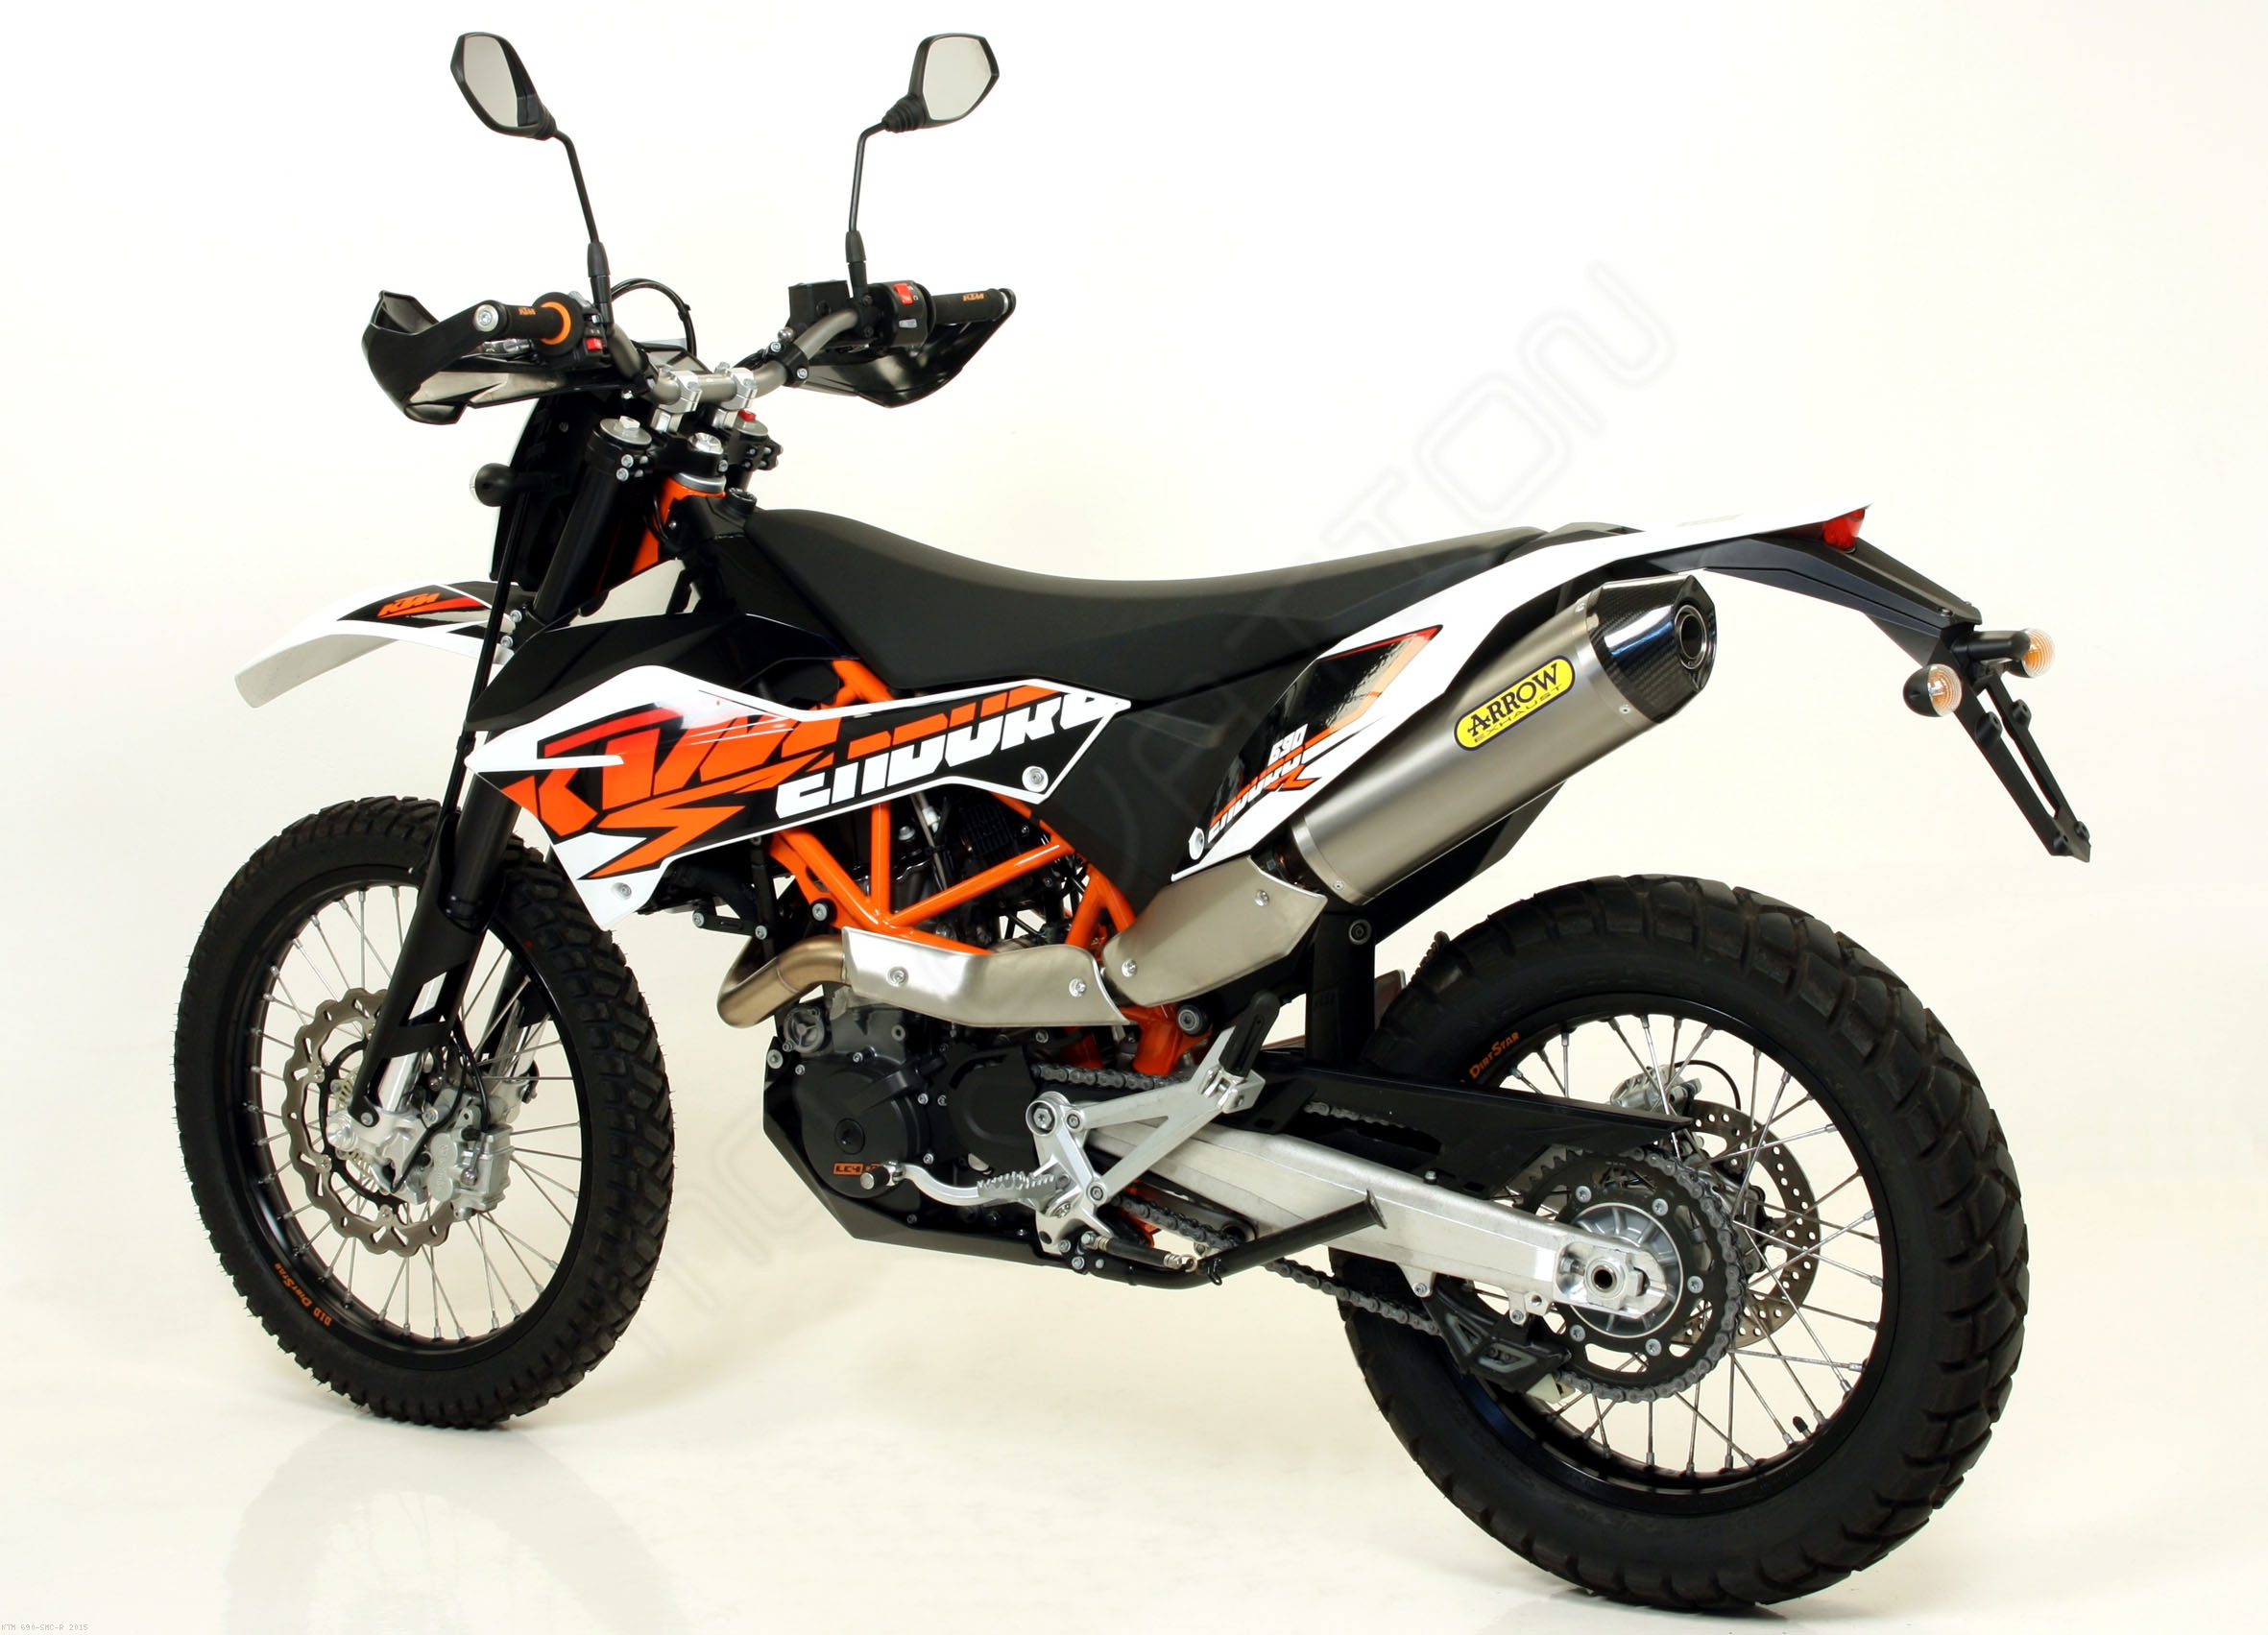 race tech exhaust by arrow ktm 690 smc r 2015 72618. Black Bedroom Furniture Sets. Home Design Ideas